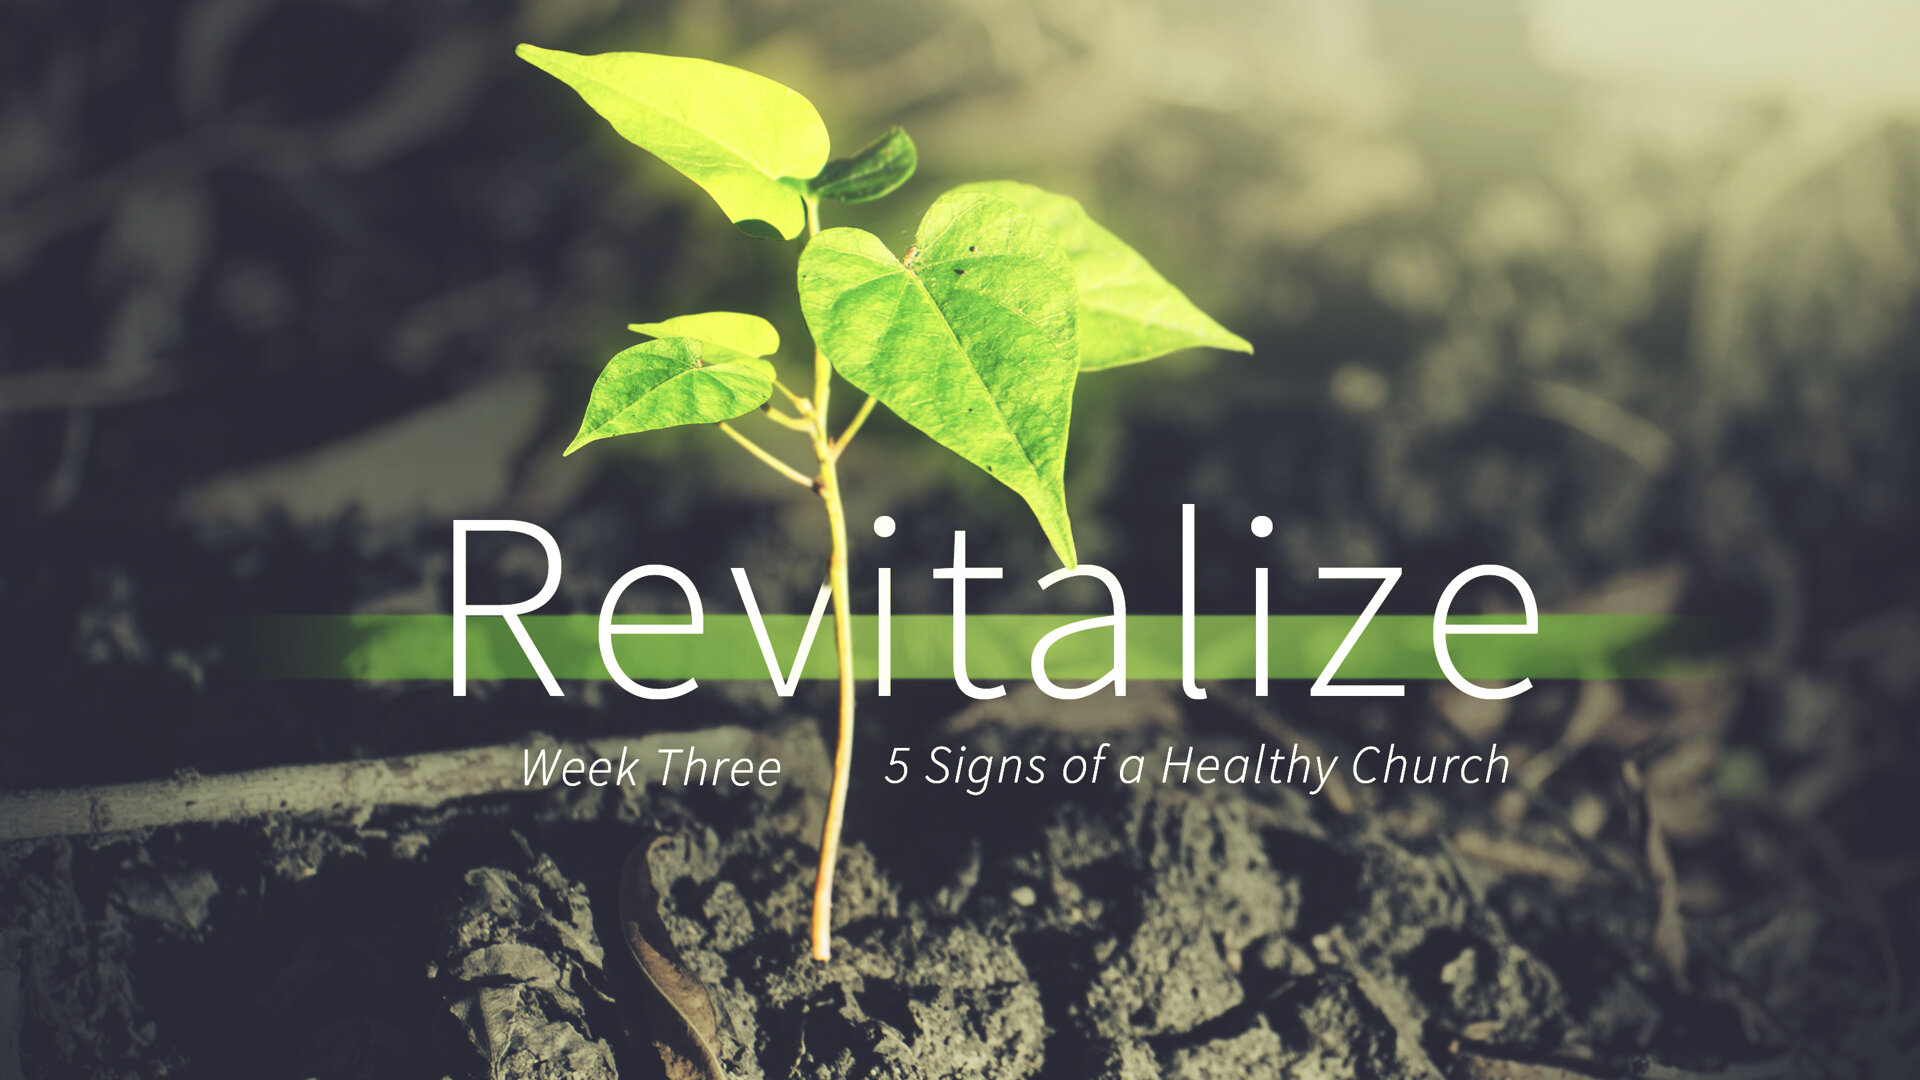 Revitalize - Week 3 - 5 Signs of a Healthy Church copy.007.jpeg